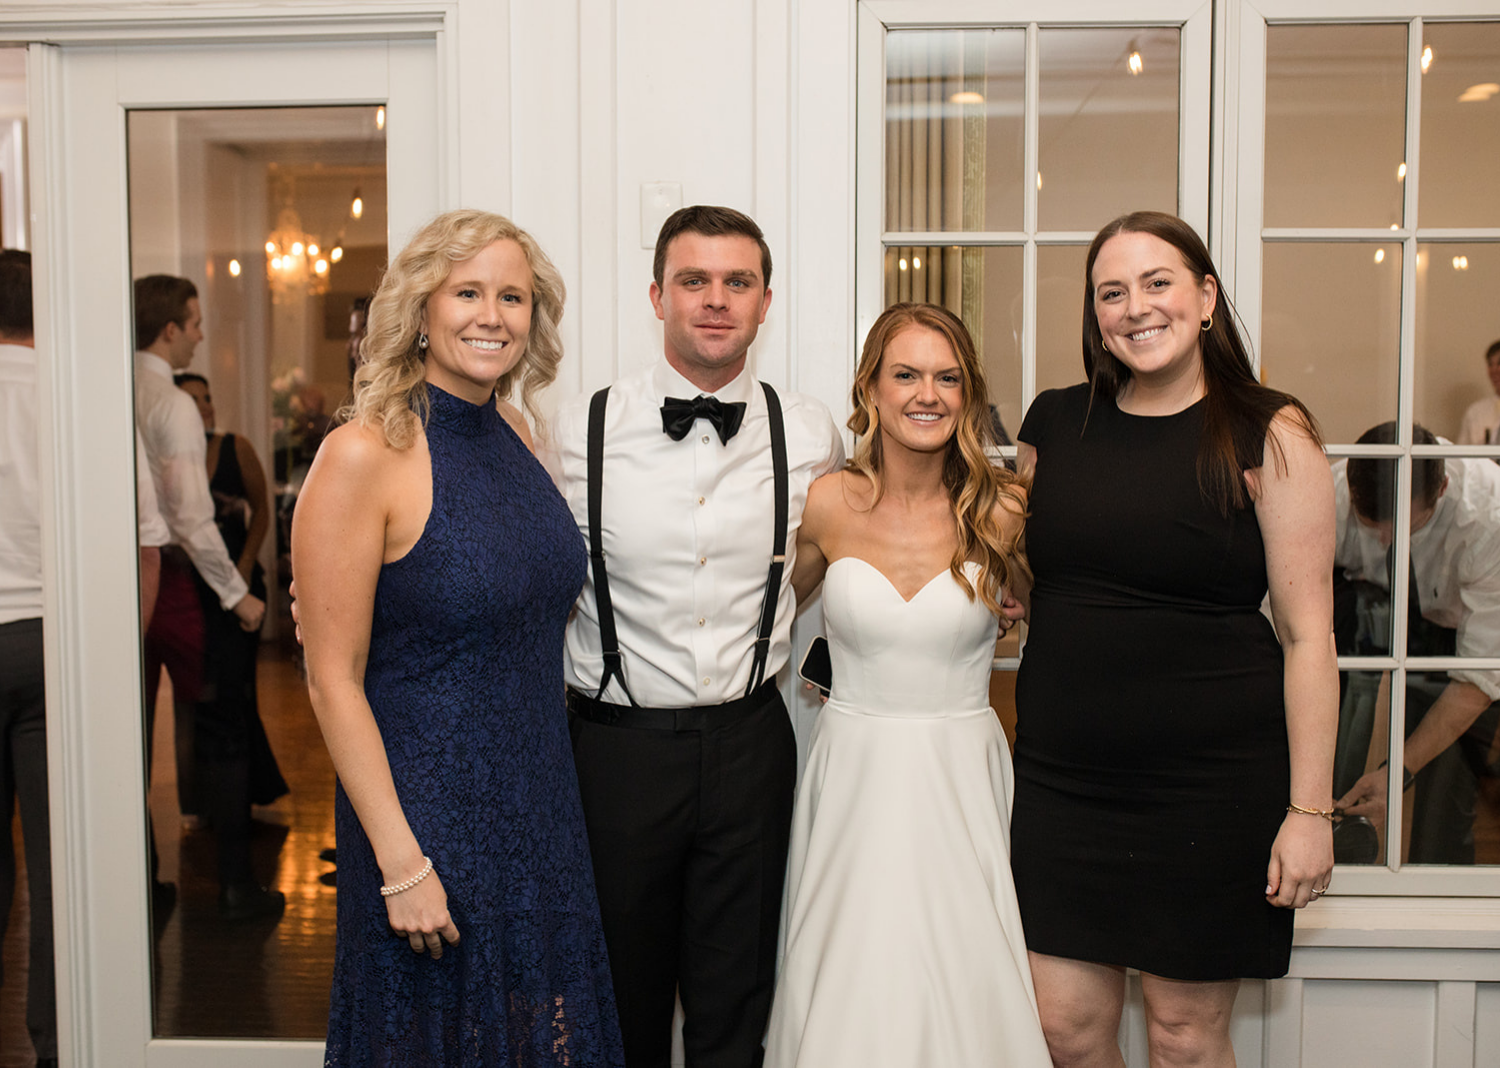 bride and groom with wedding guests